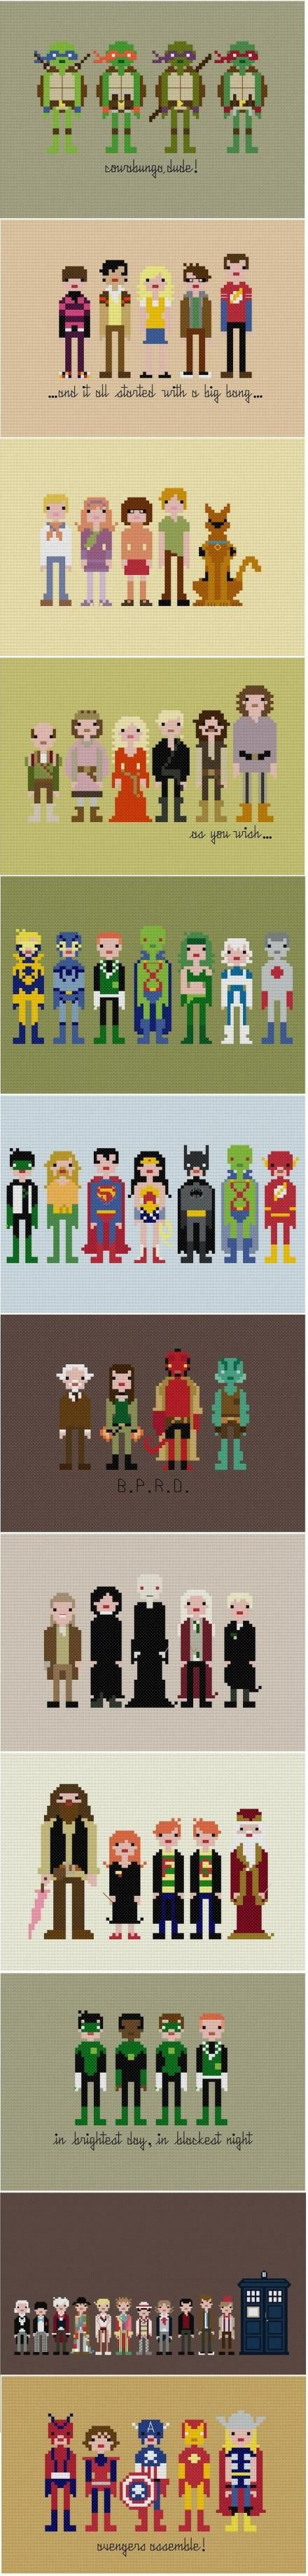 Cross Stitch of various tv shows, movies and characters... fandom!